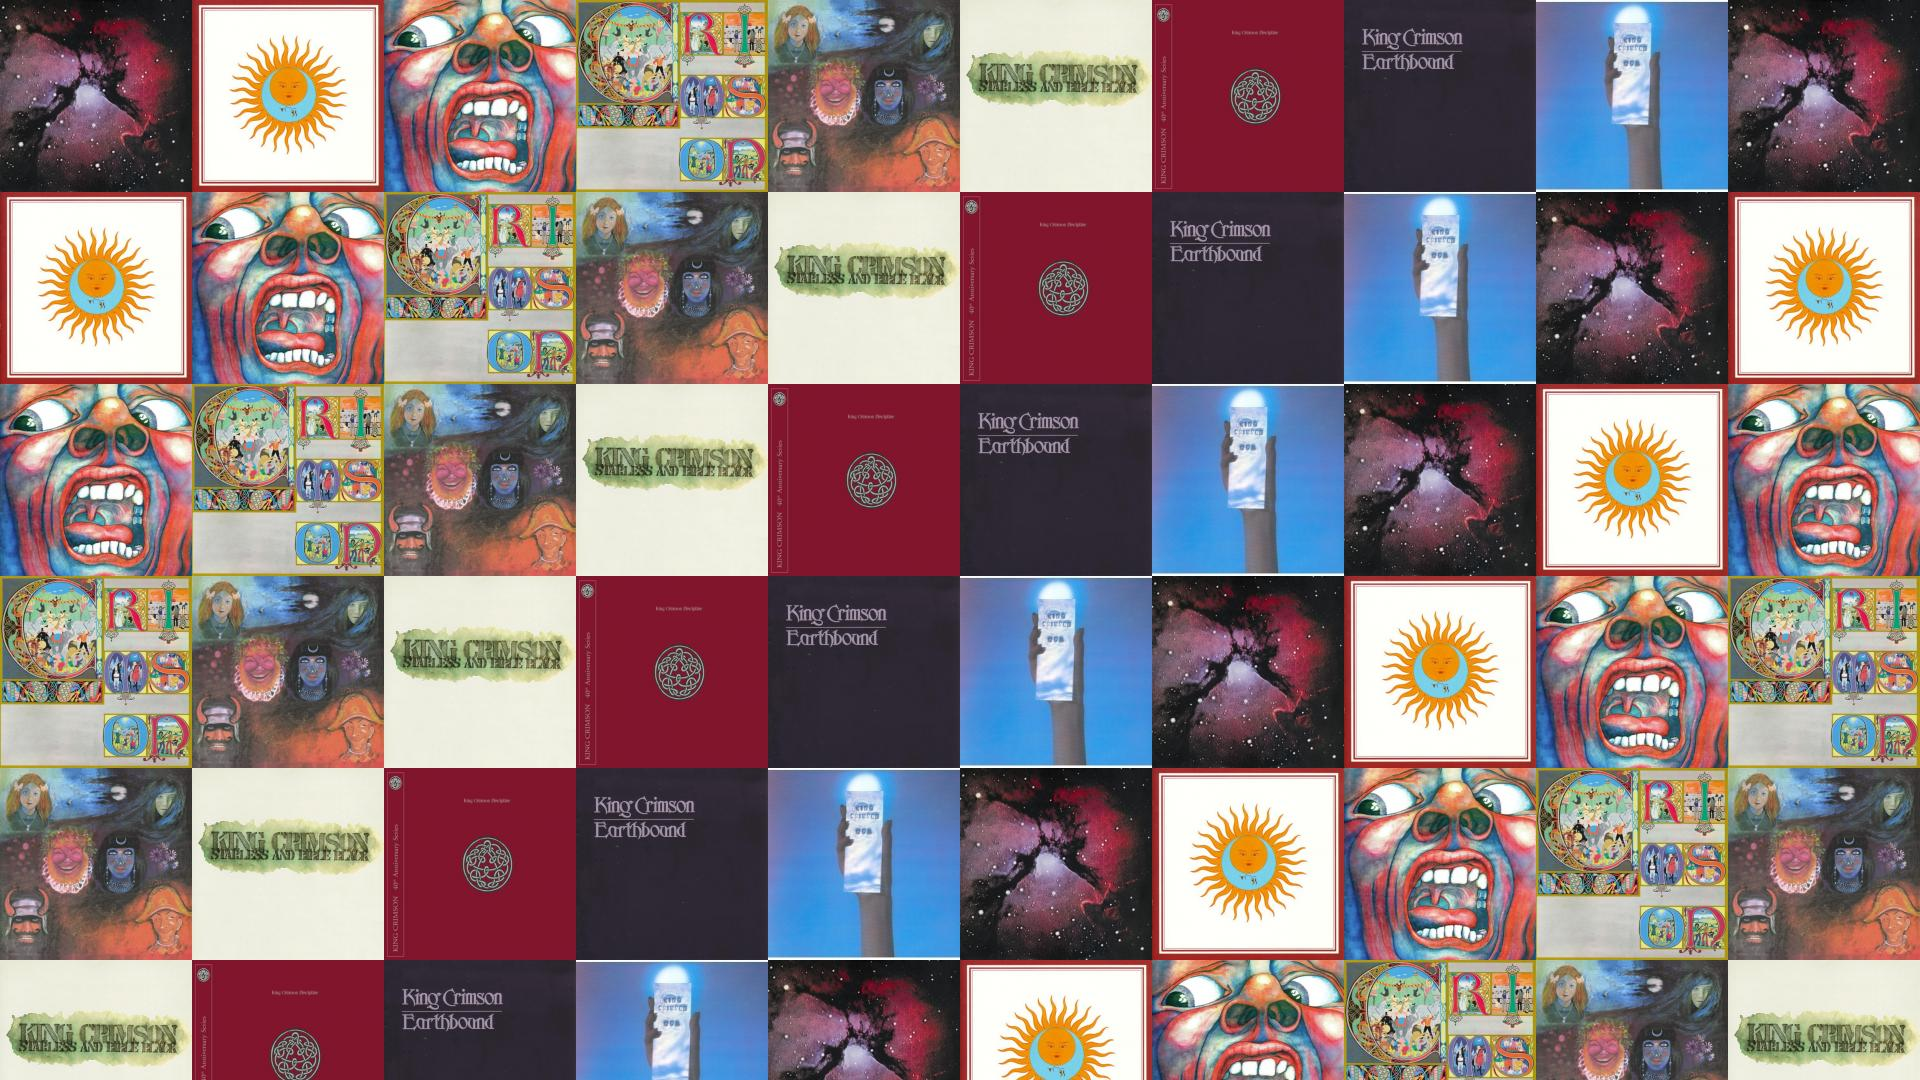 islands king crimson